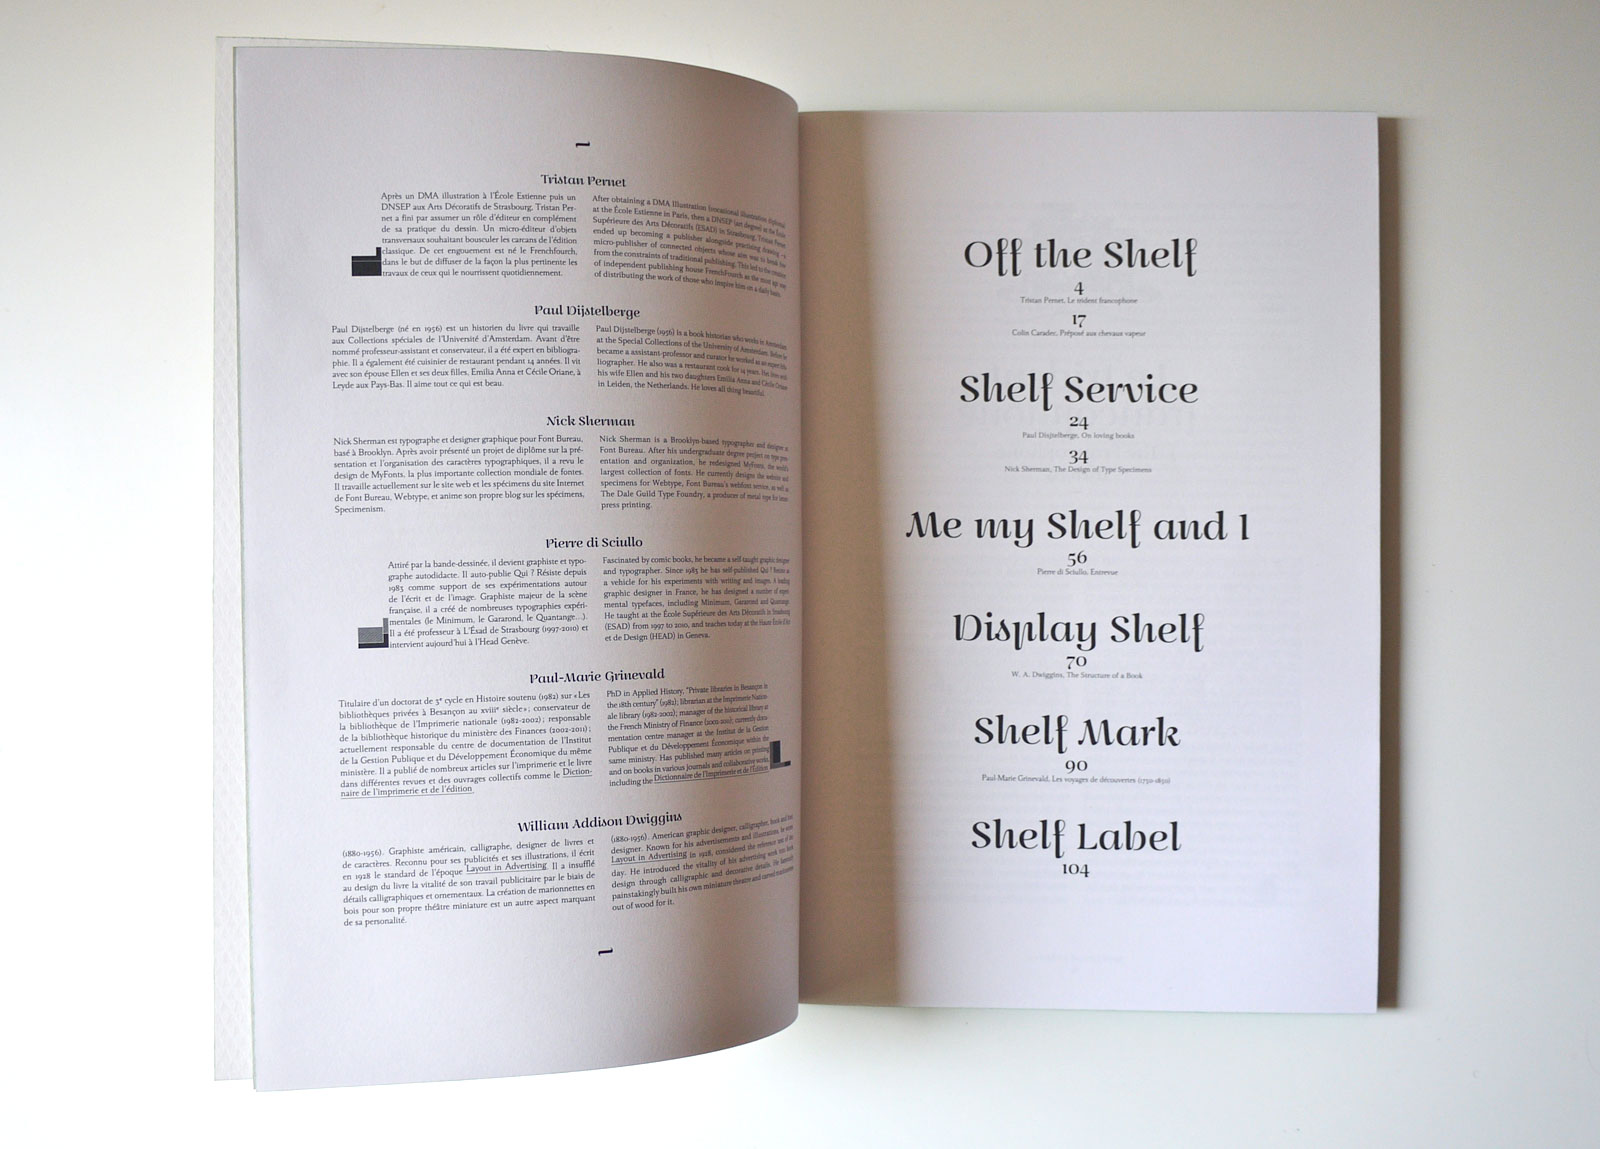 The Shelf Journal contents